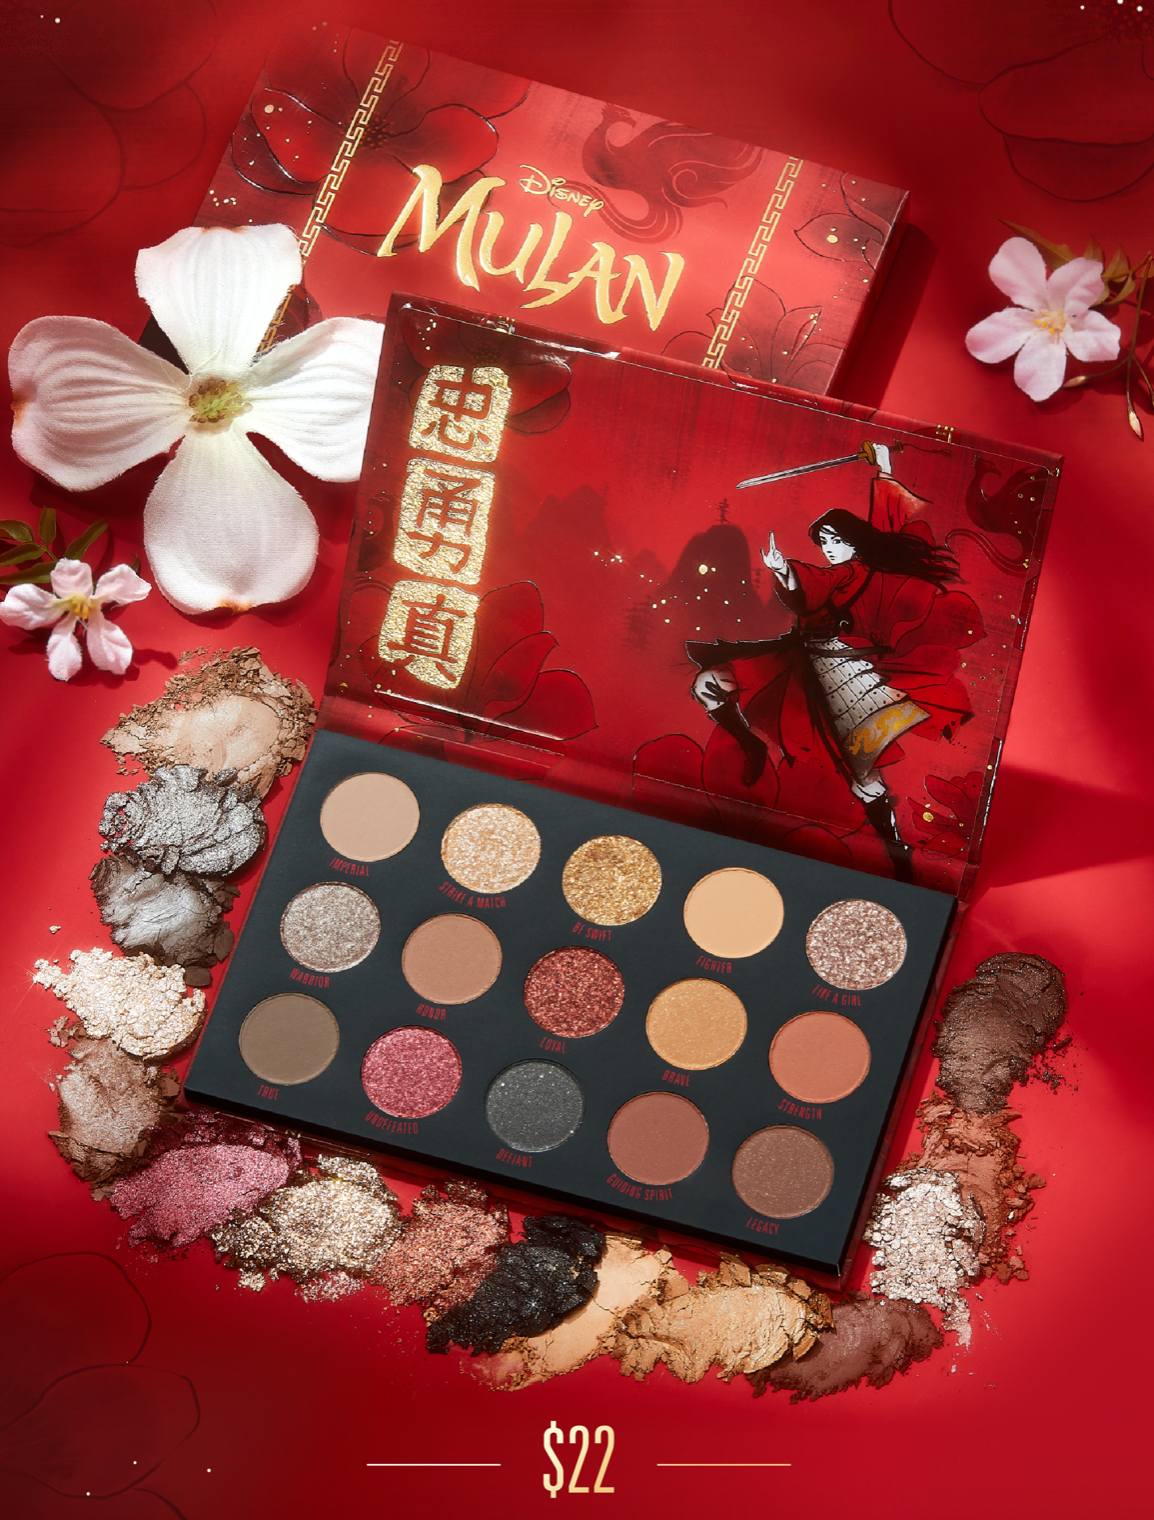 This Disney and ColourPop Mulan Makeup Collection is a